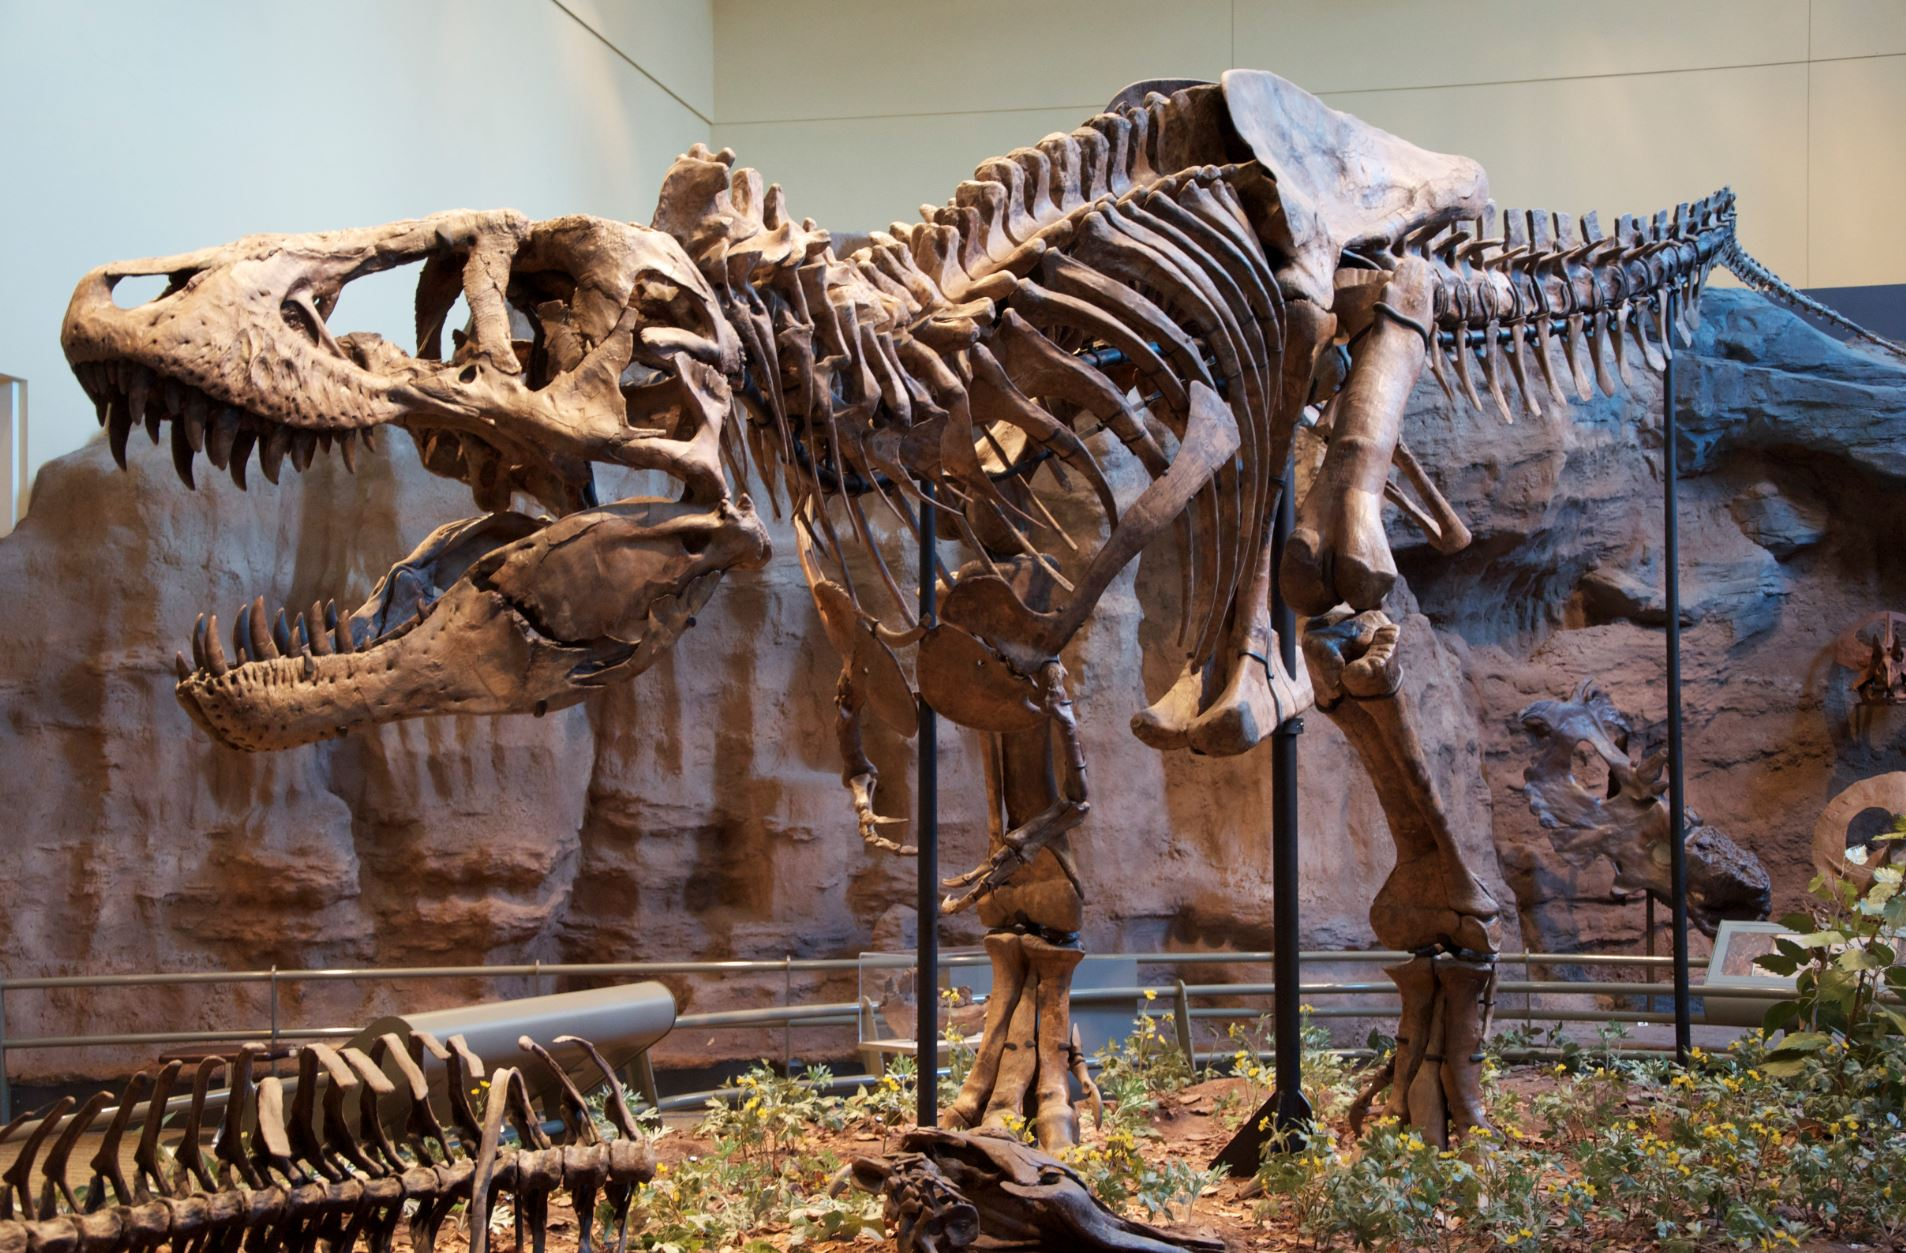 The massive T-rex is a sight to behold. Here seen at the Carnegie Museum of Natural History in Pittsburgh - Image Credit:  ScottRobertAnselmo via Wikimedia Commons